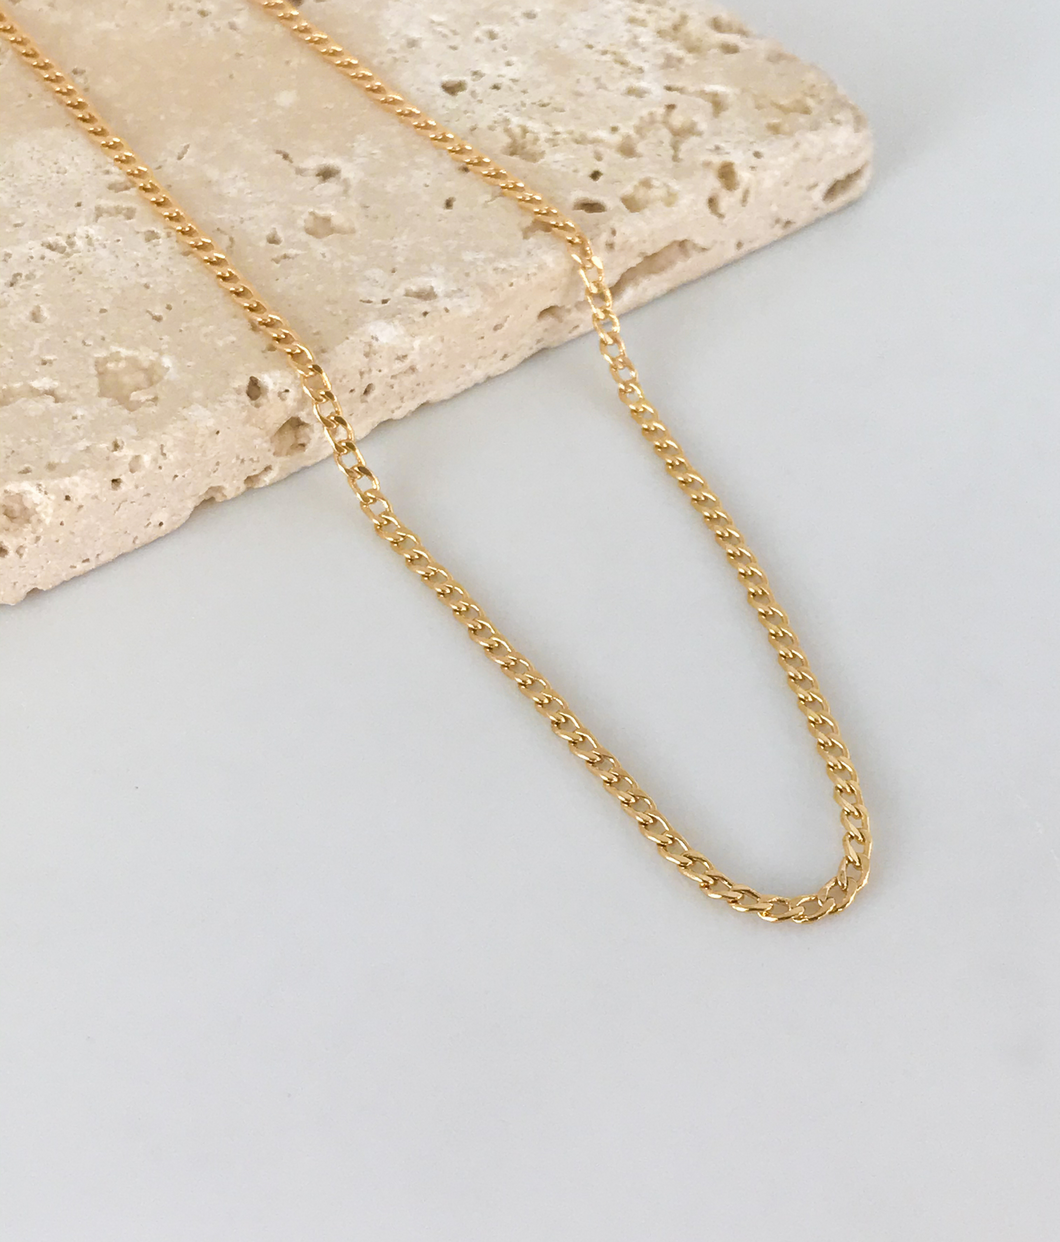 CUBAN LINK CHAIN NECKLACE | 2MM